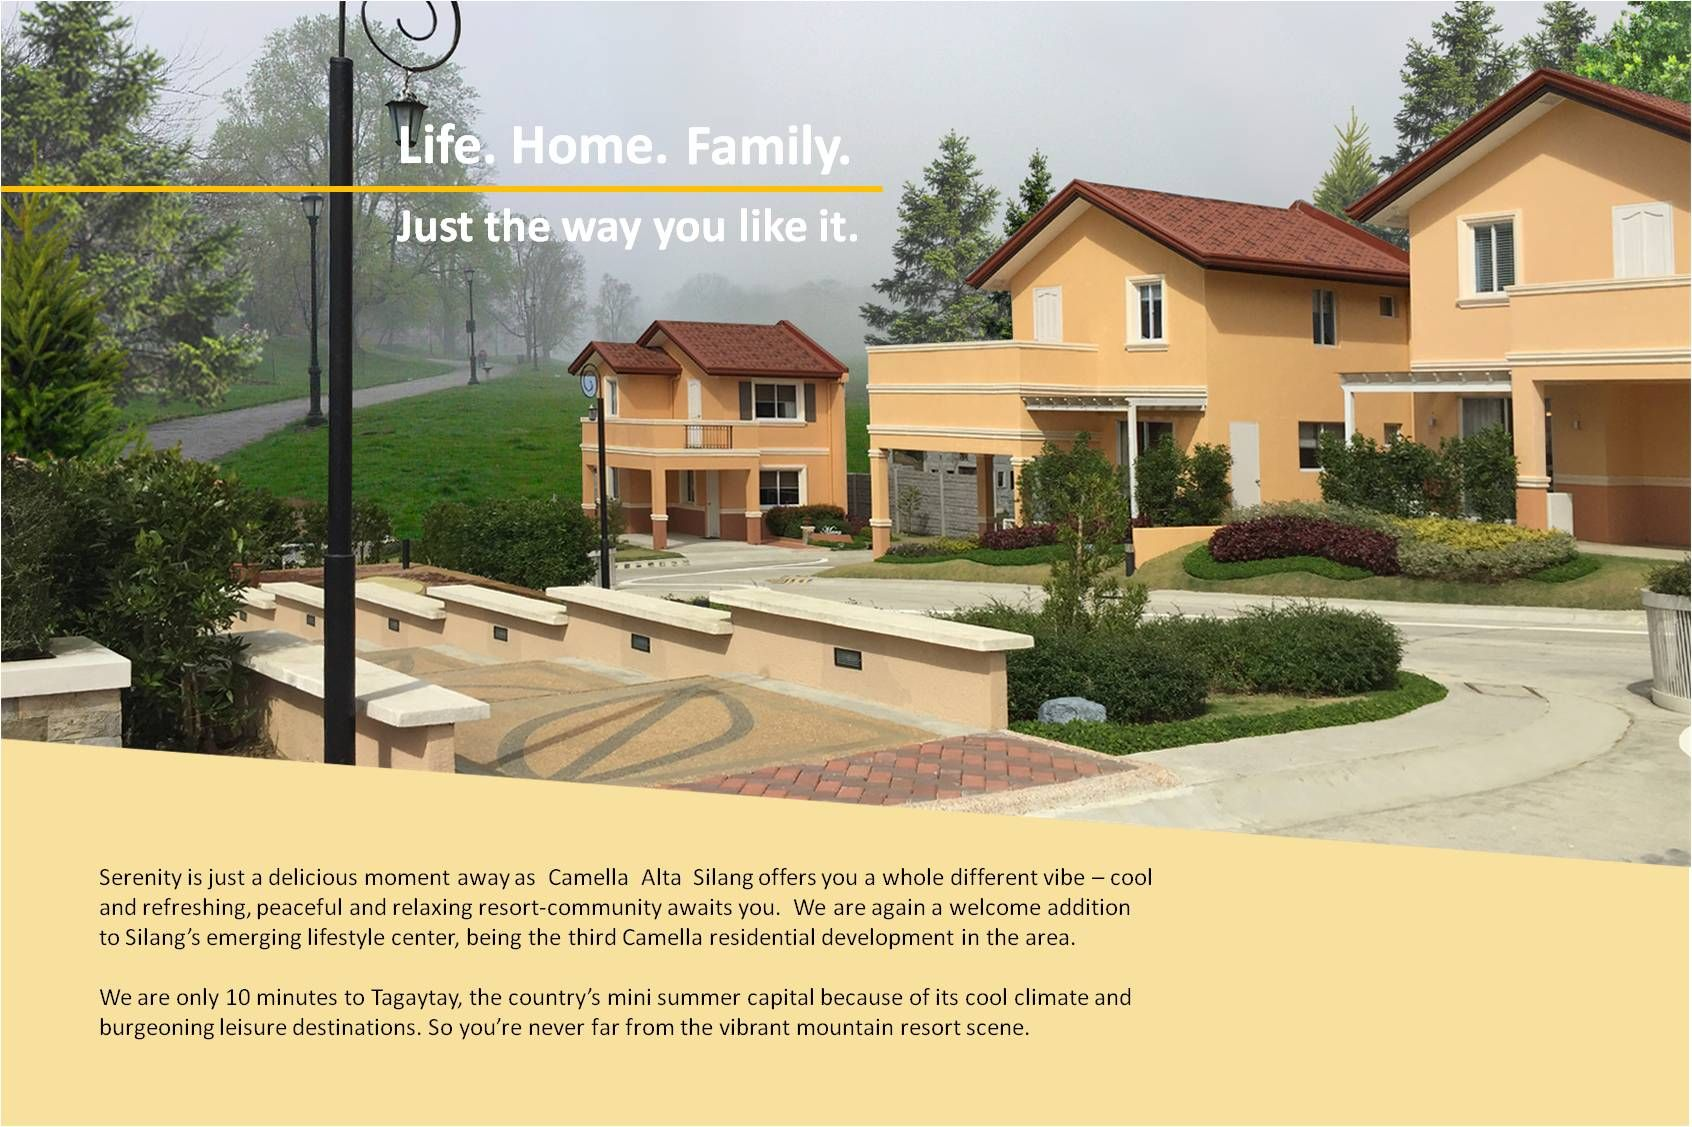 Camella silang tagaytay drina house and lot for sale in tagaytay city - 1000 Images About Camella Alta Silang Cavite On Pinterest Watches Philippines And Lots For Sale